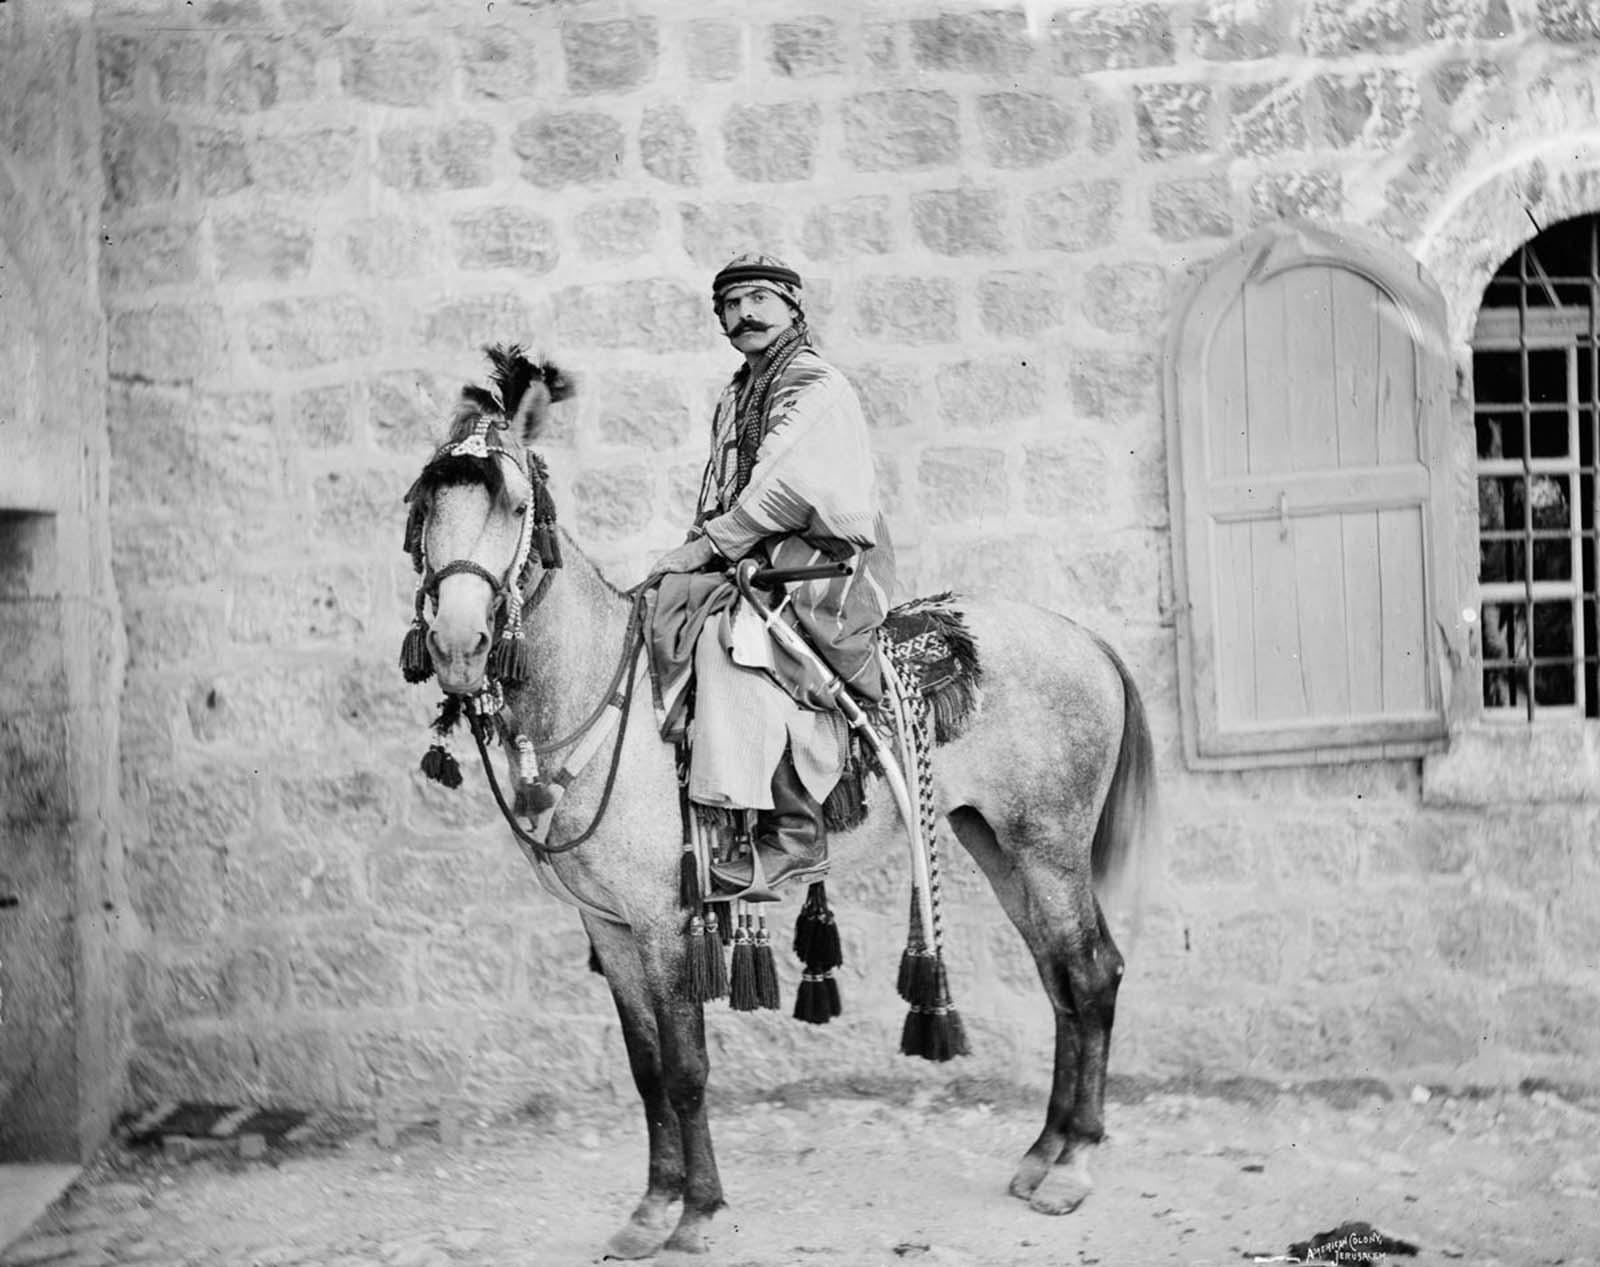 A Bedouin man poses on horseback.